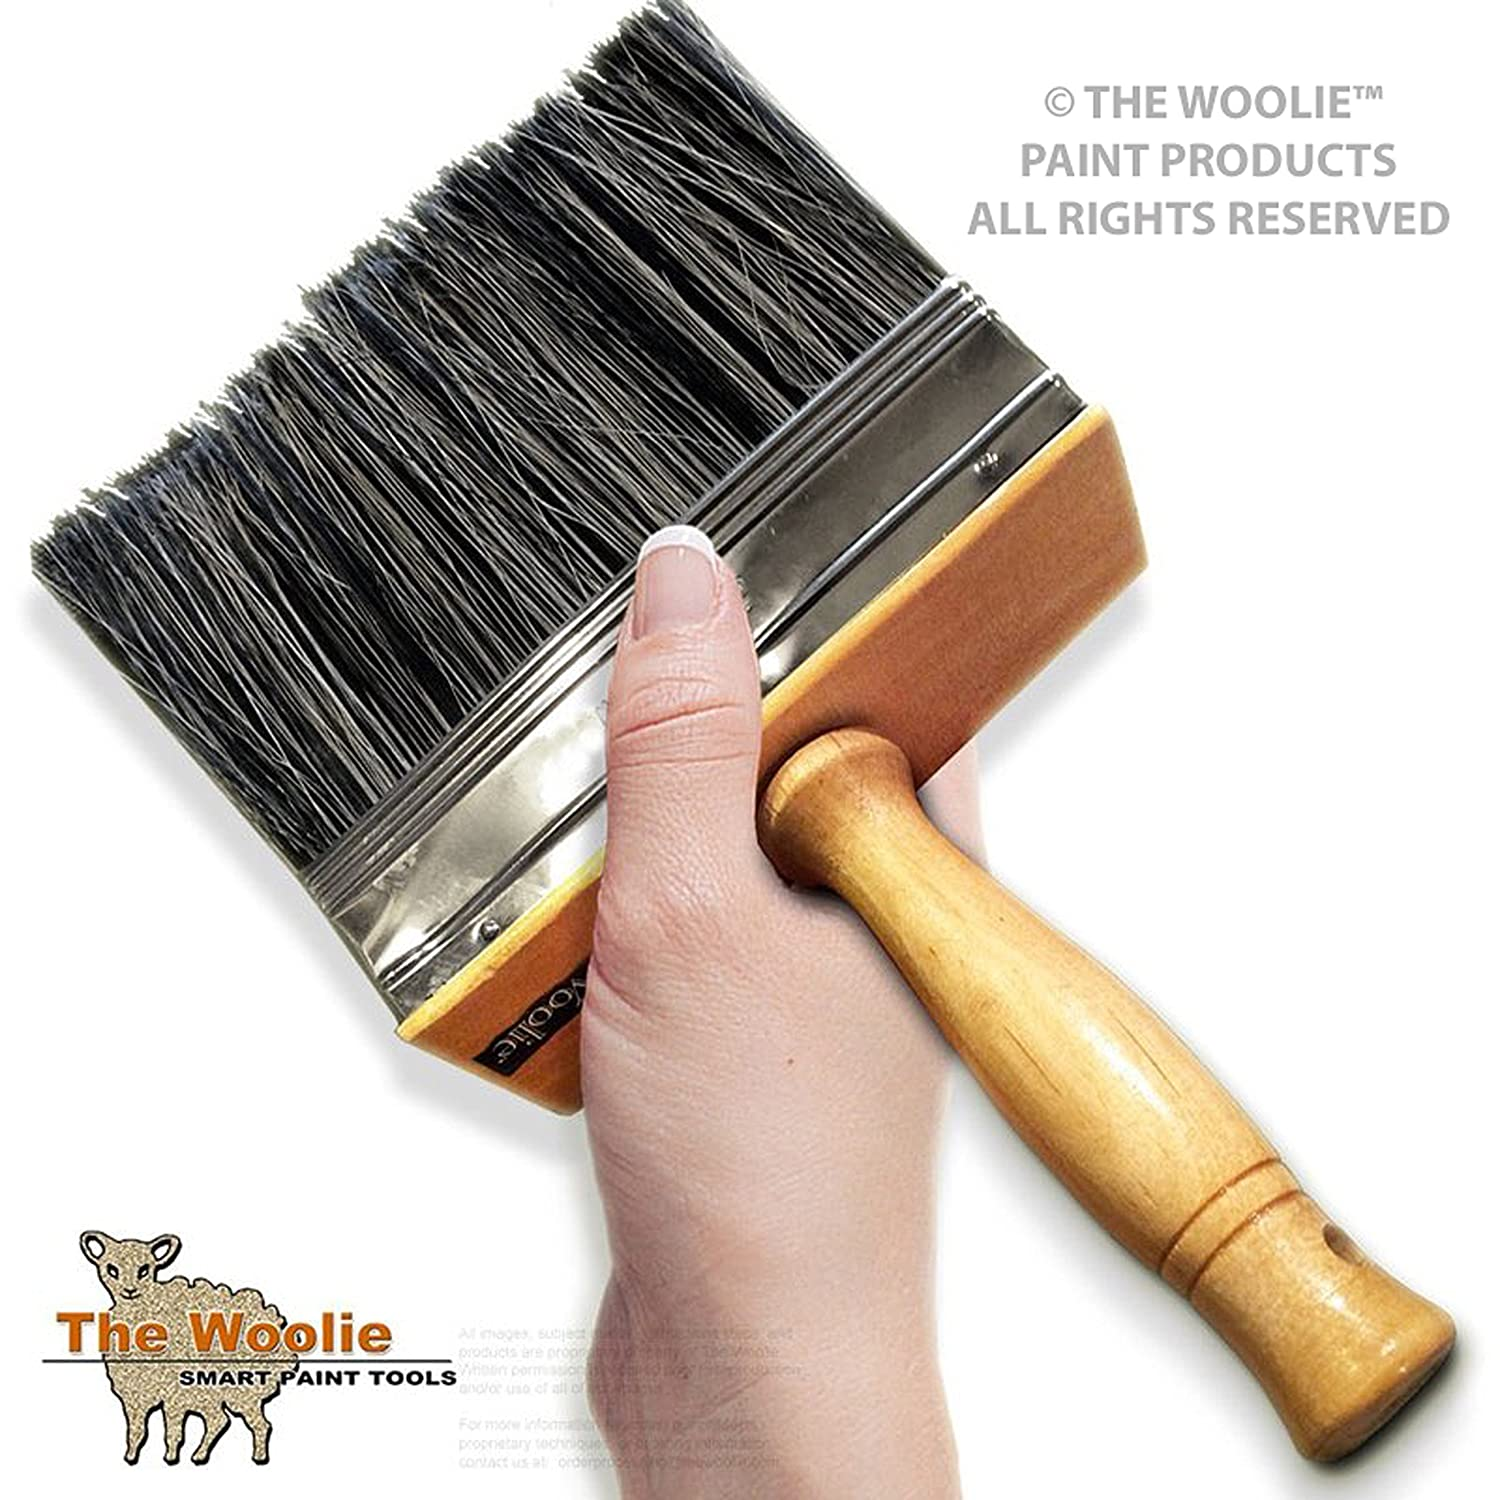 6 Inch SUPER SIZE Multi Purpose Painting and Faux Finish Painting